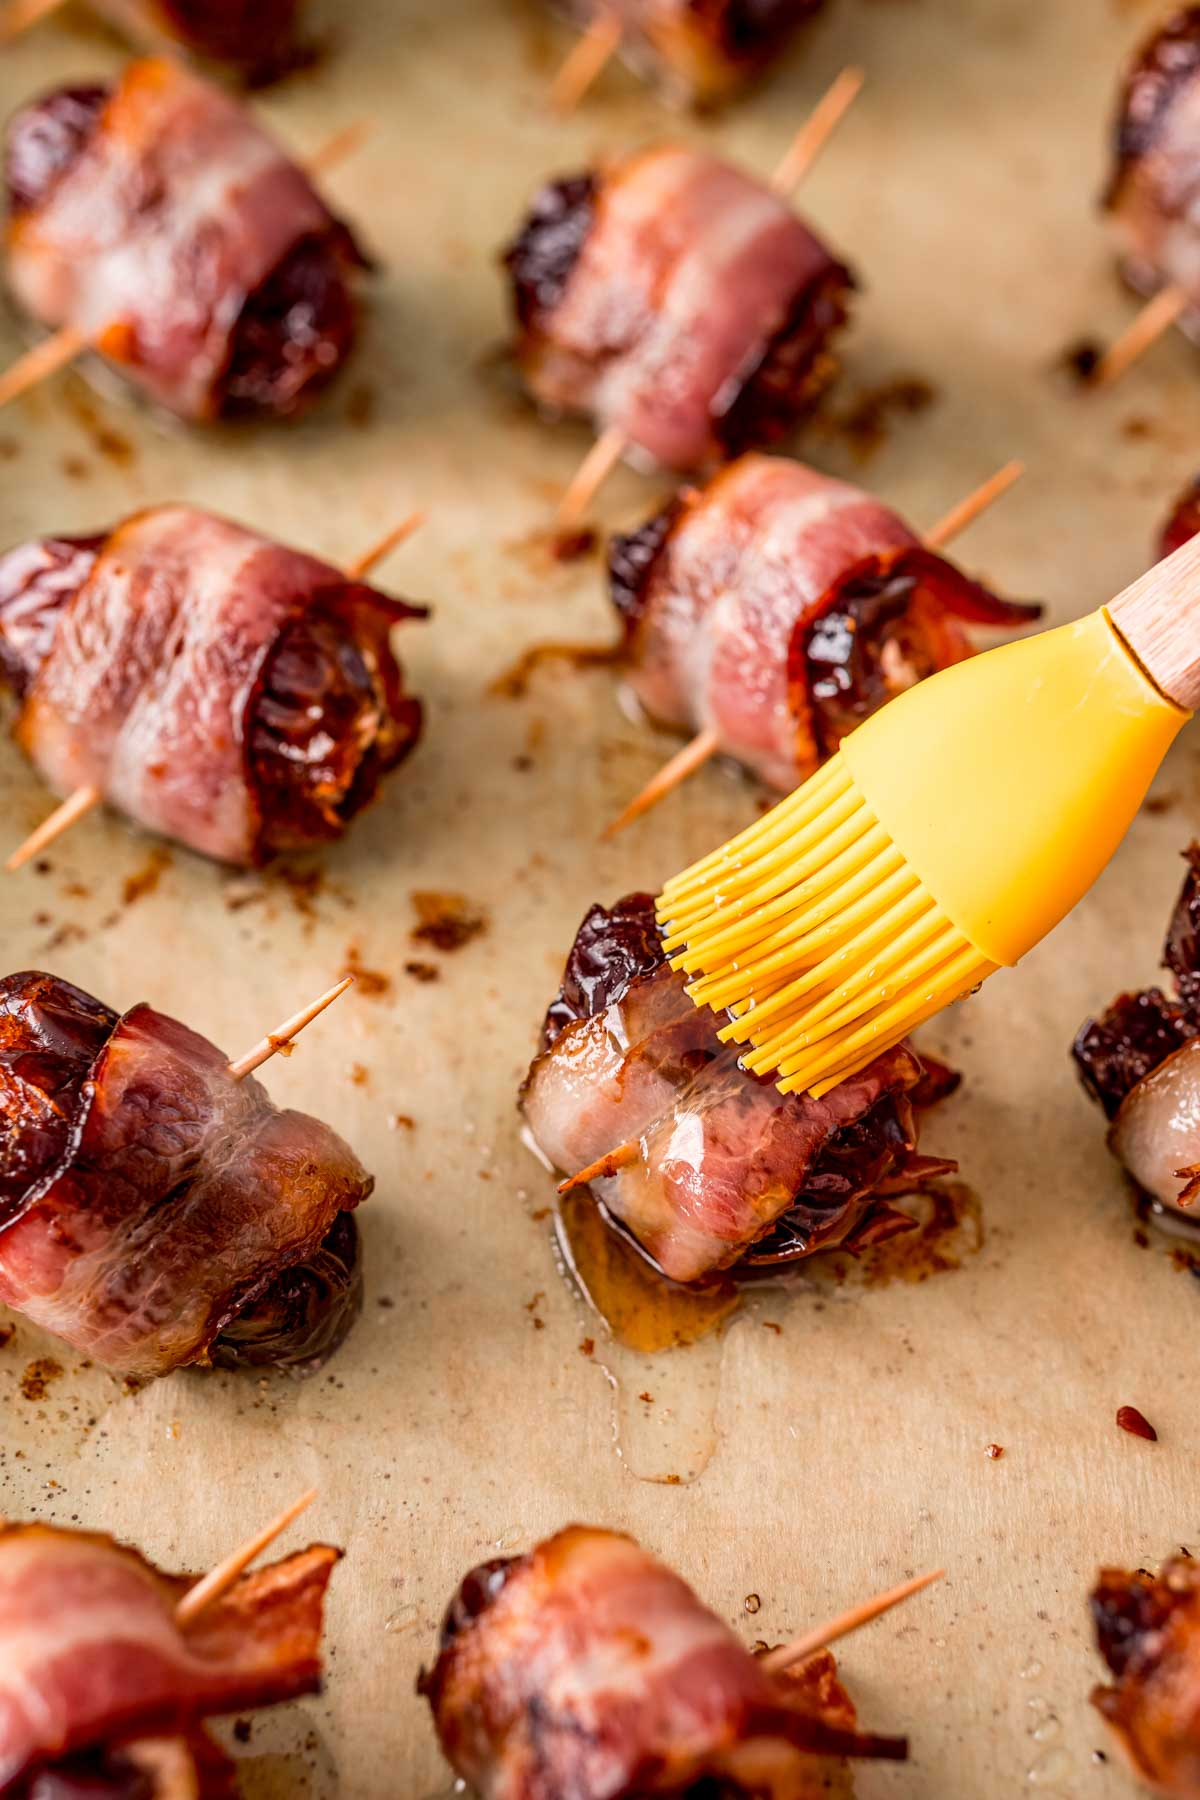 Bacon wrapped dates being brushed with maple syrup